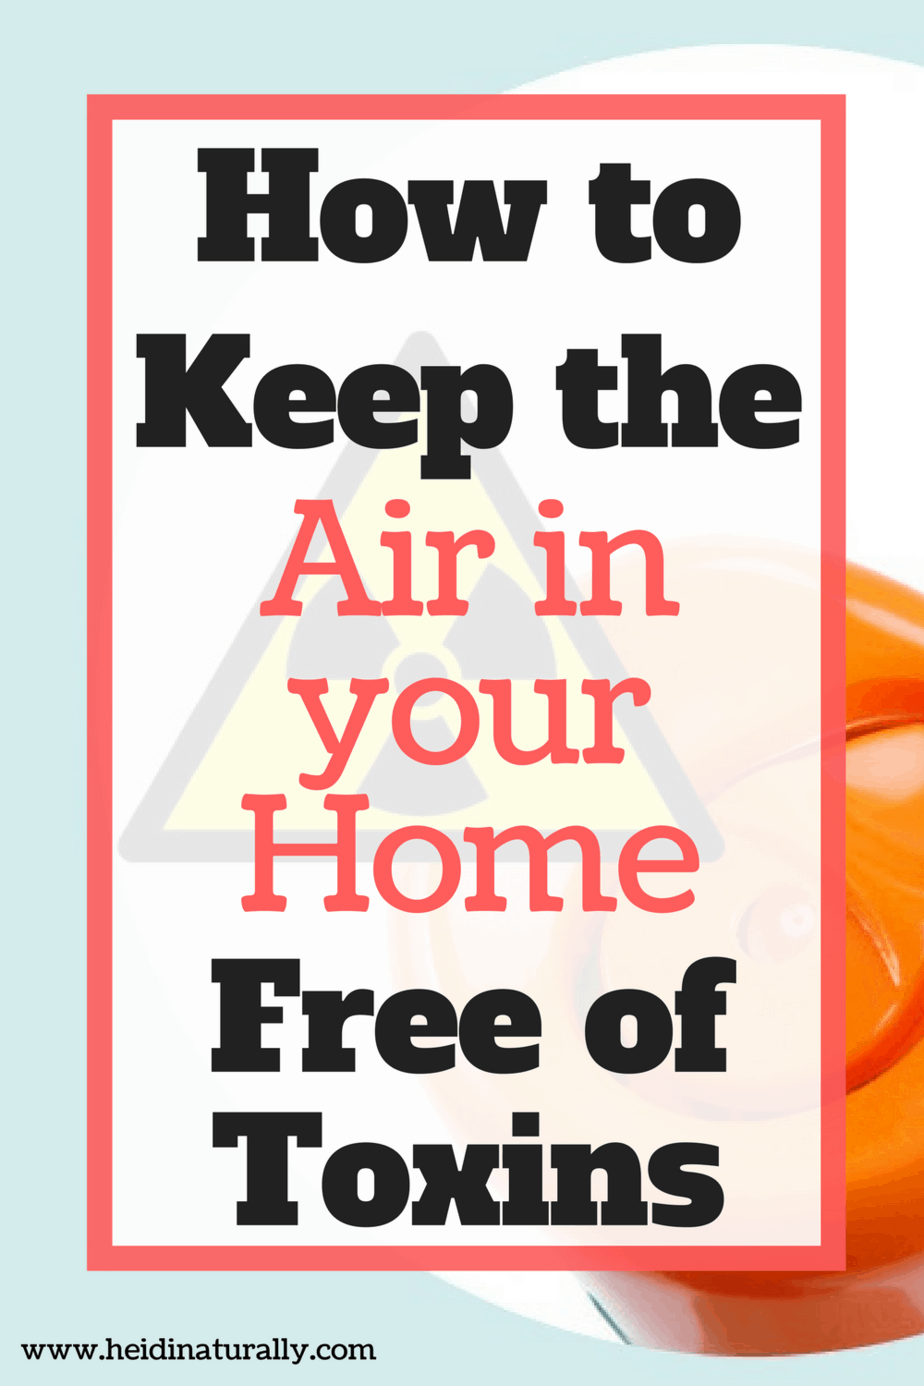 Learn how to recognize the toxins in air in your home. Get the chemicals and air pollutants out and learn what to use instead for health benefits.